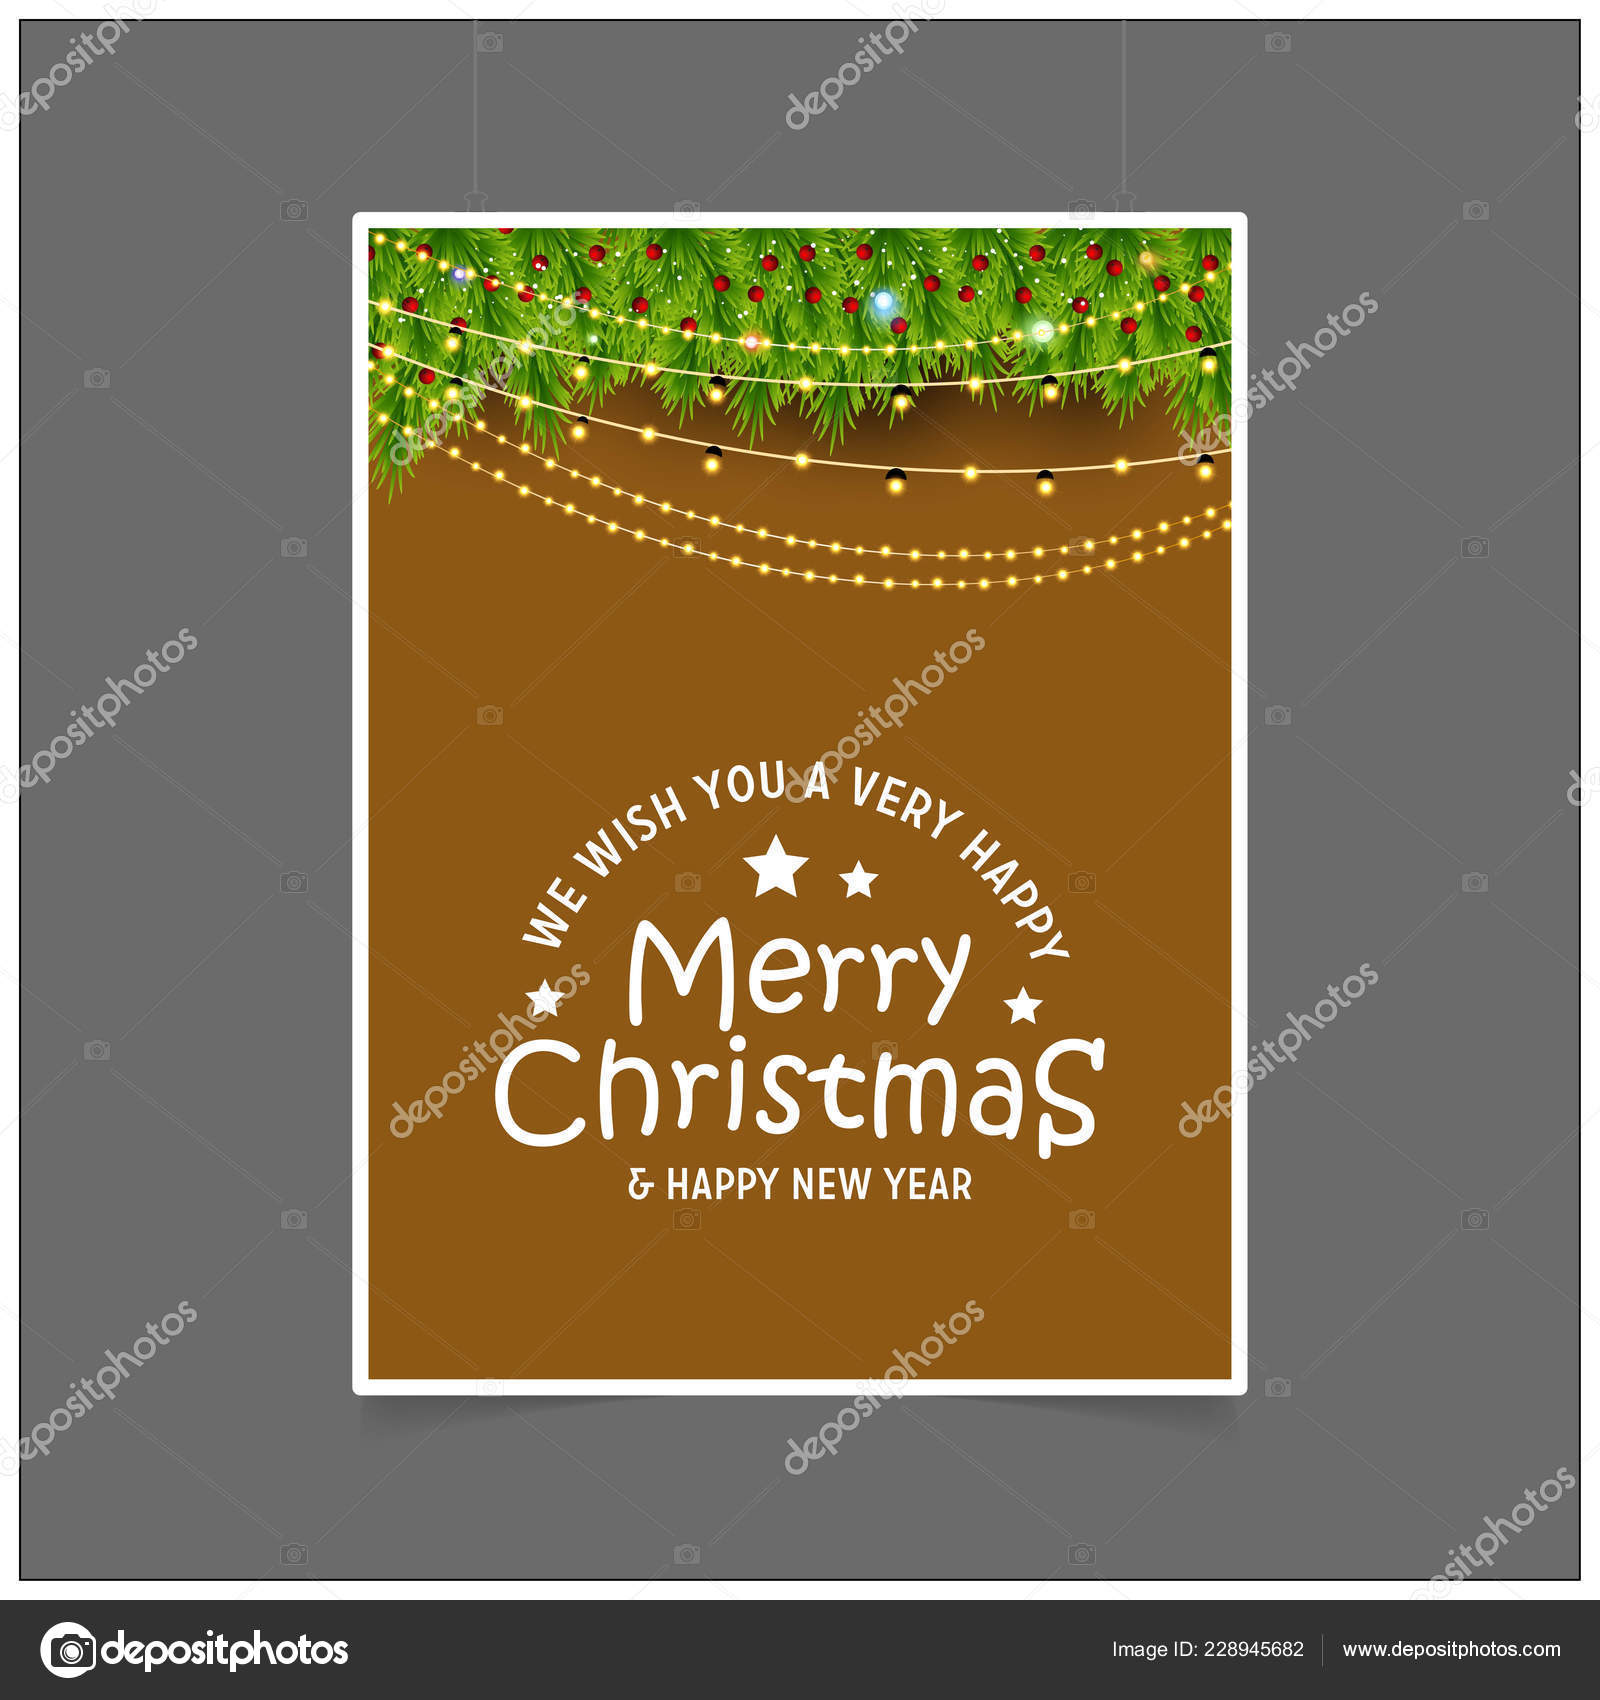 we wish you a very happy merry christmas and happy new year lights background vector by flatart